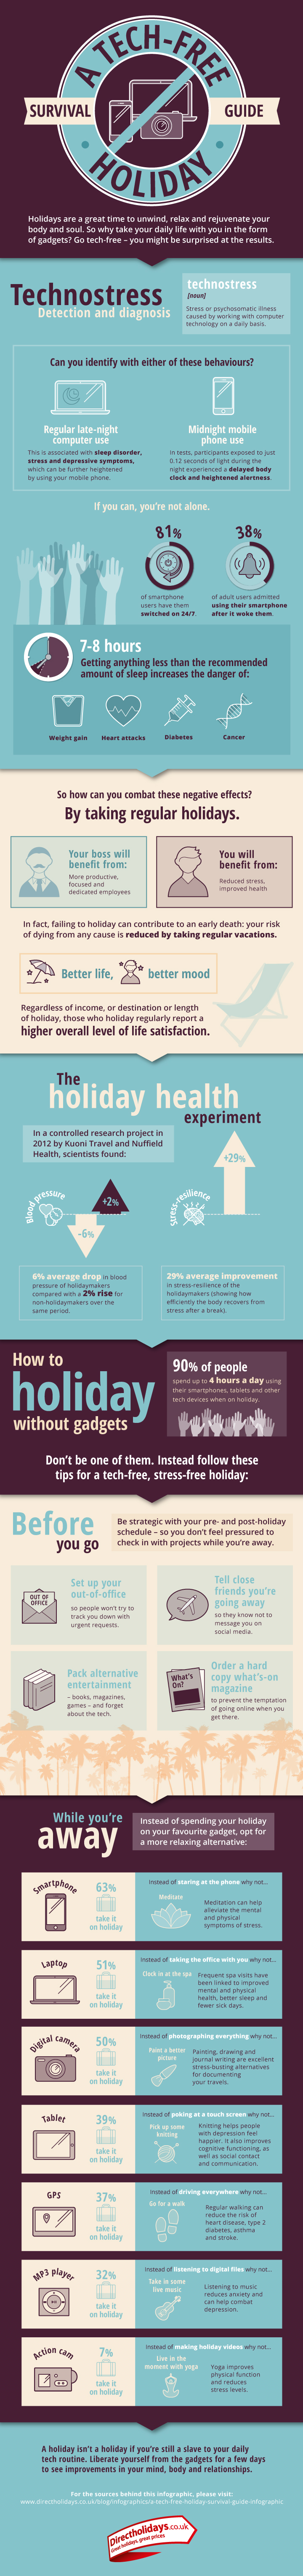 A Tech Free Holiday Survival Guide